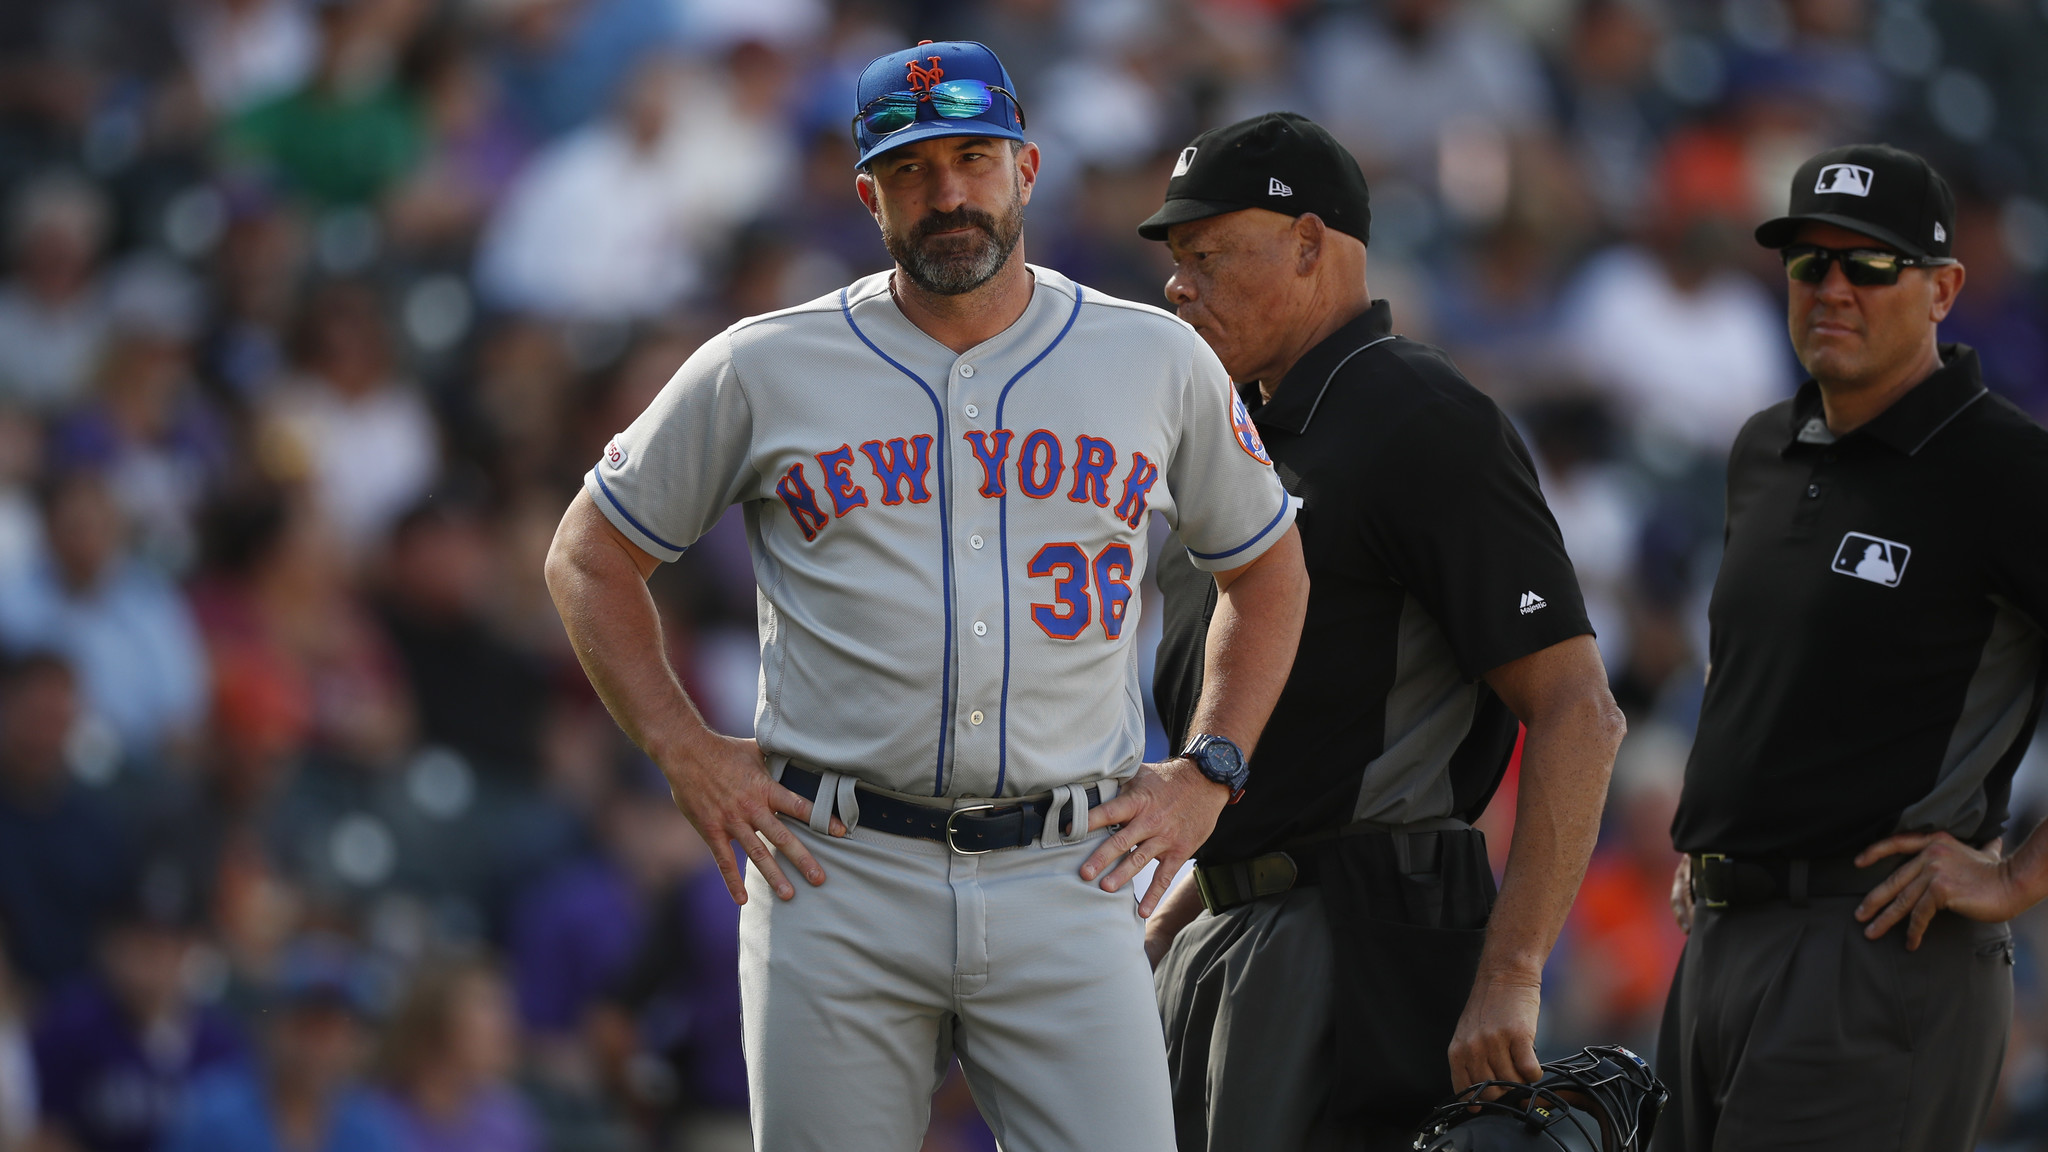 Mets' Mickey Callaway one of several managers who will be on hot seat in offseason